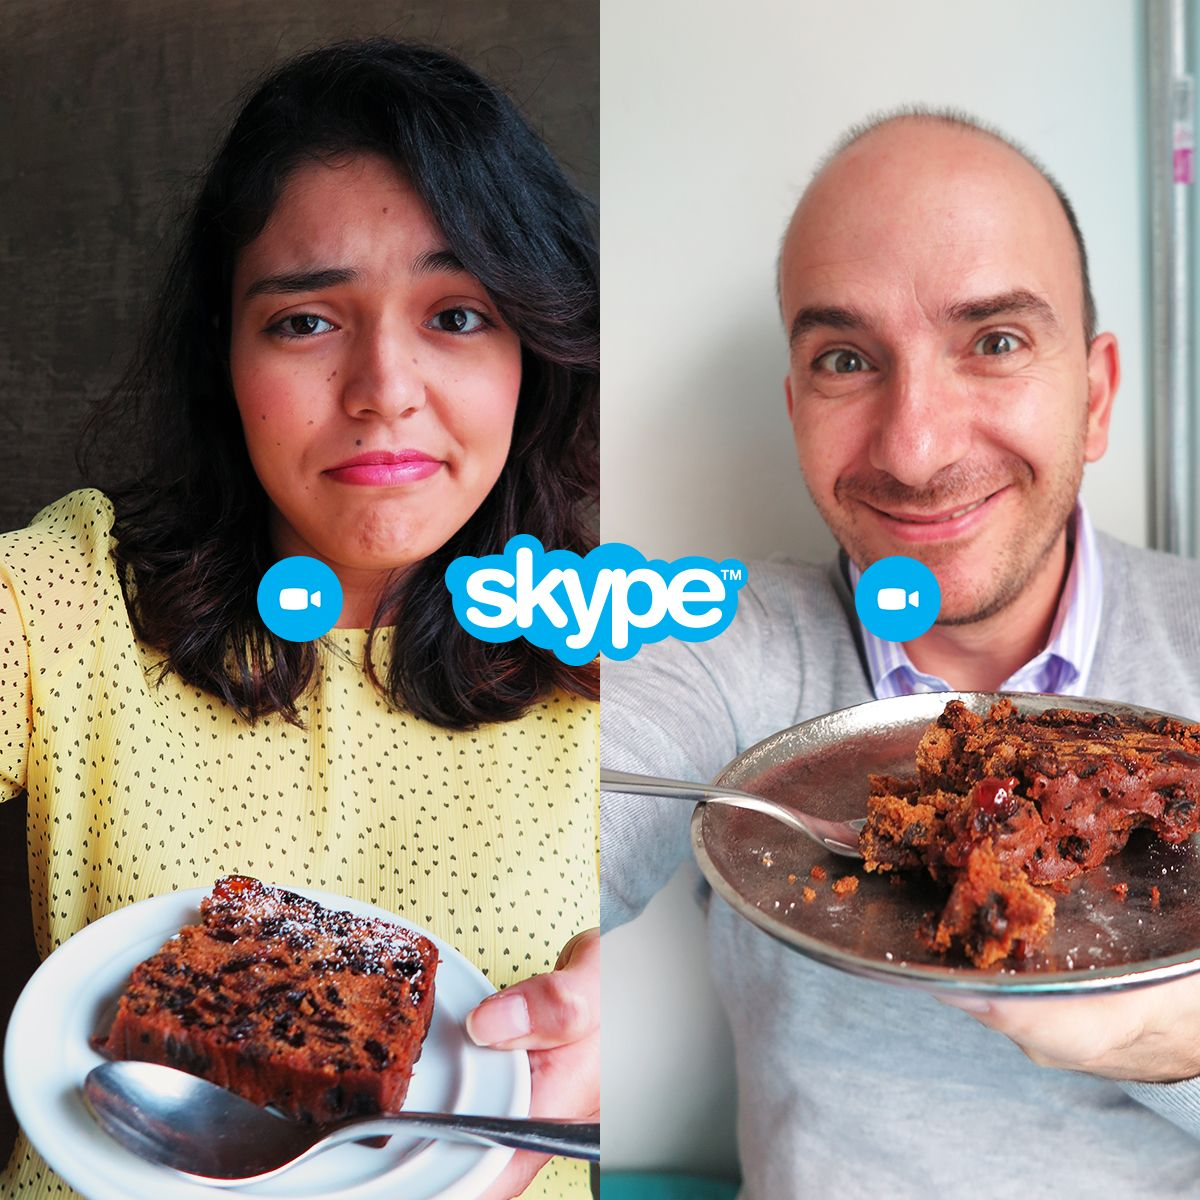 Skype Free calls to friends and family Skype